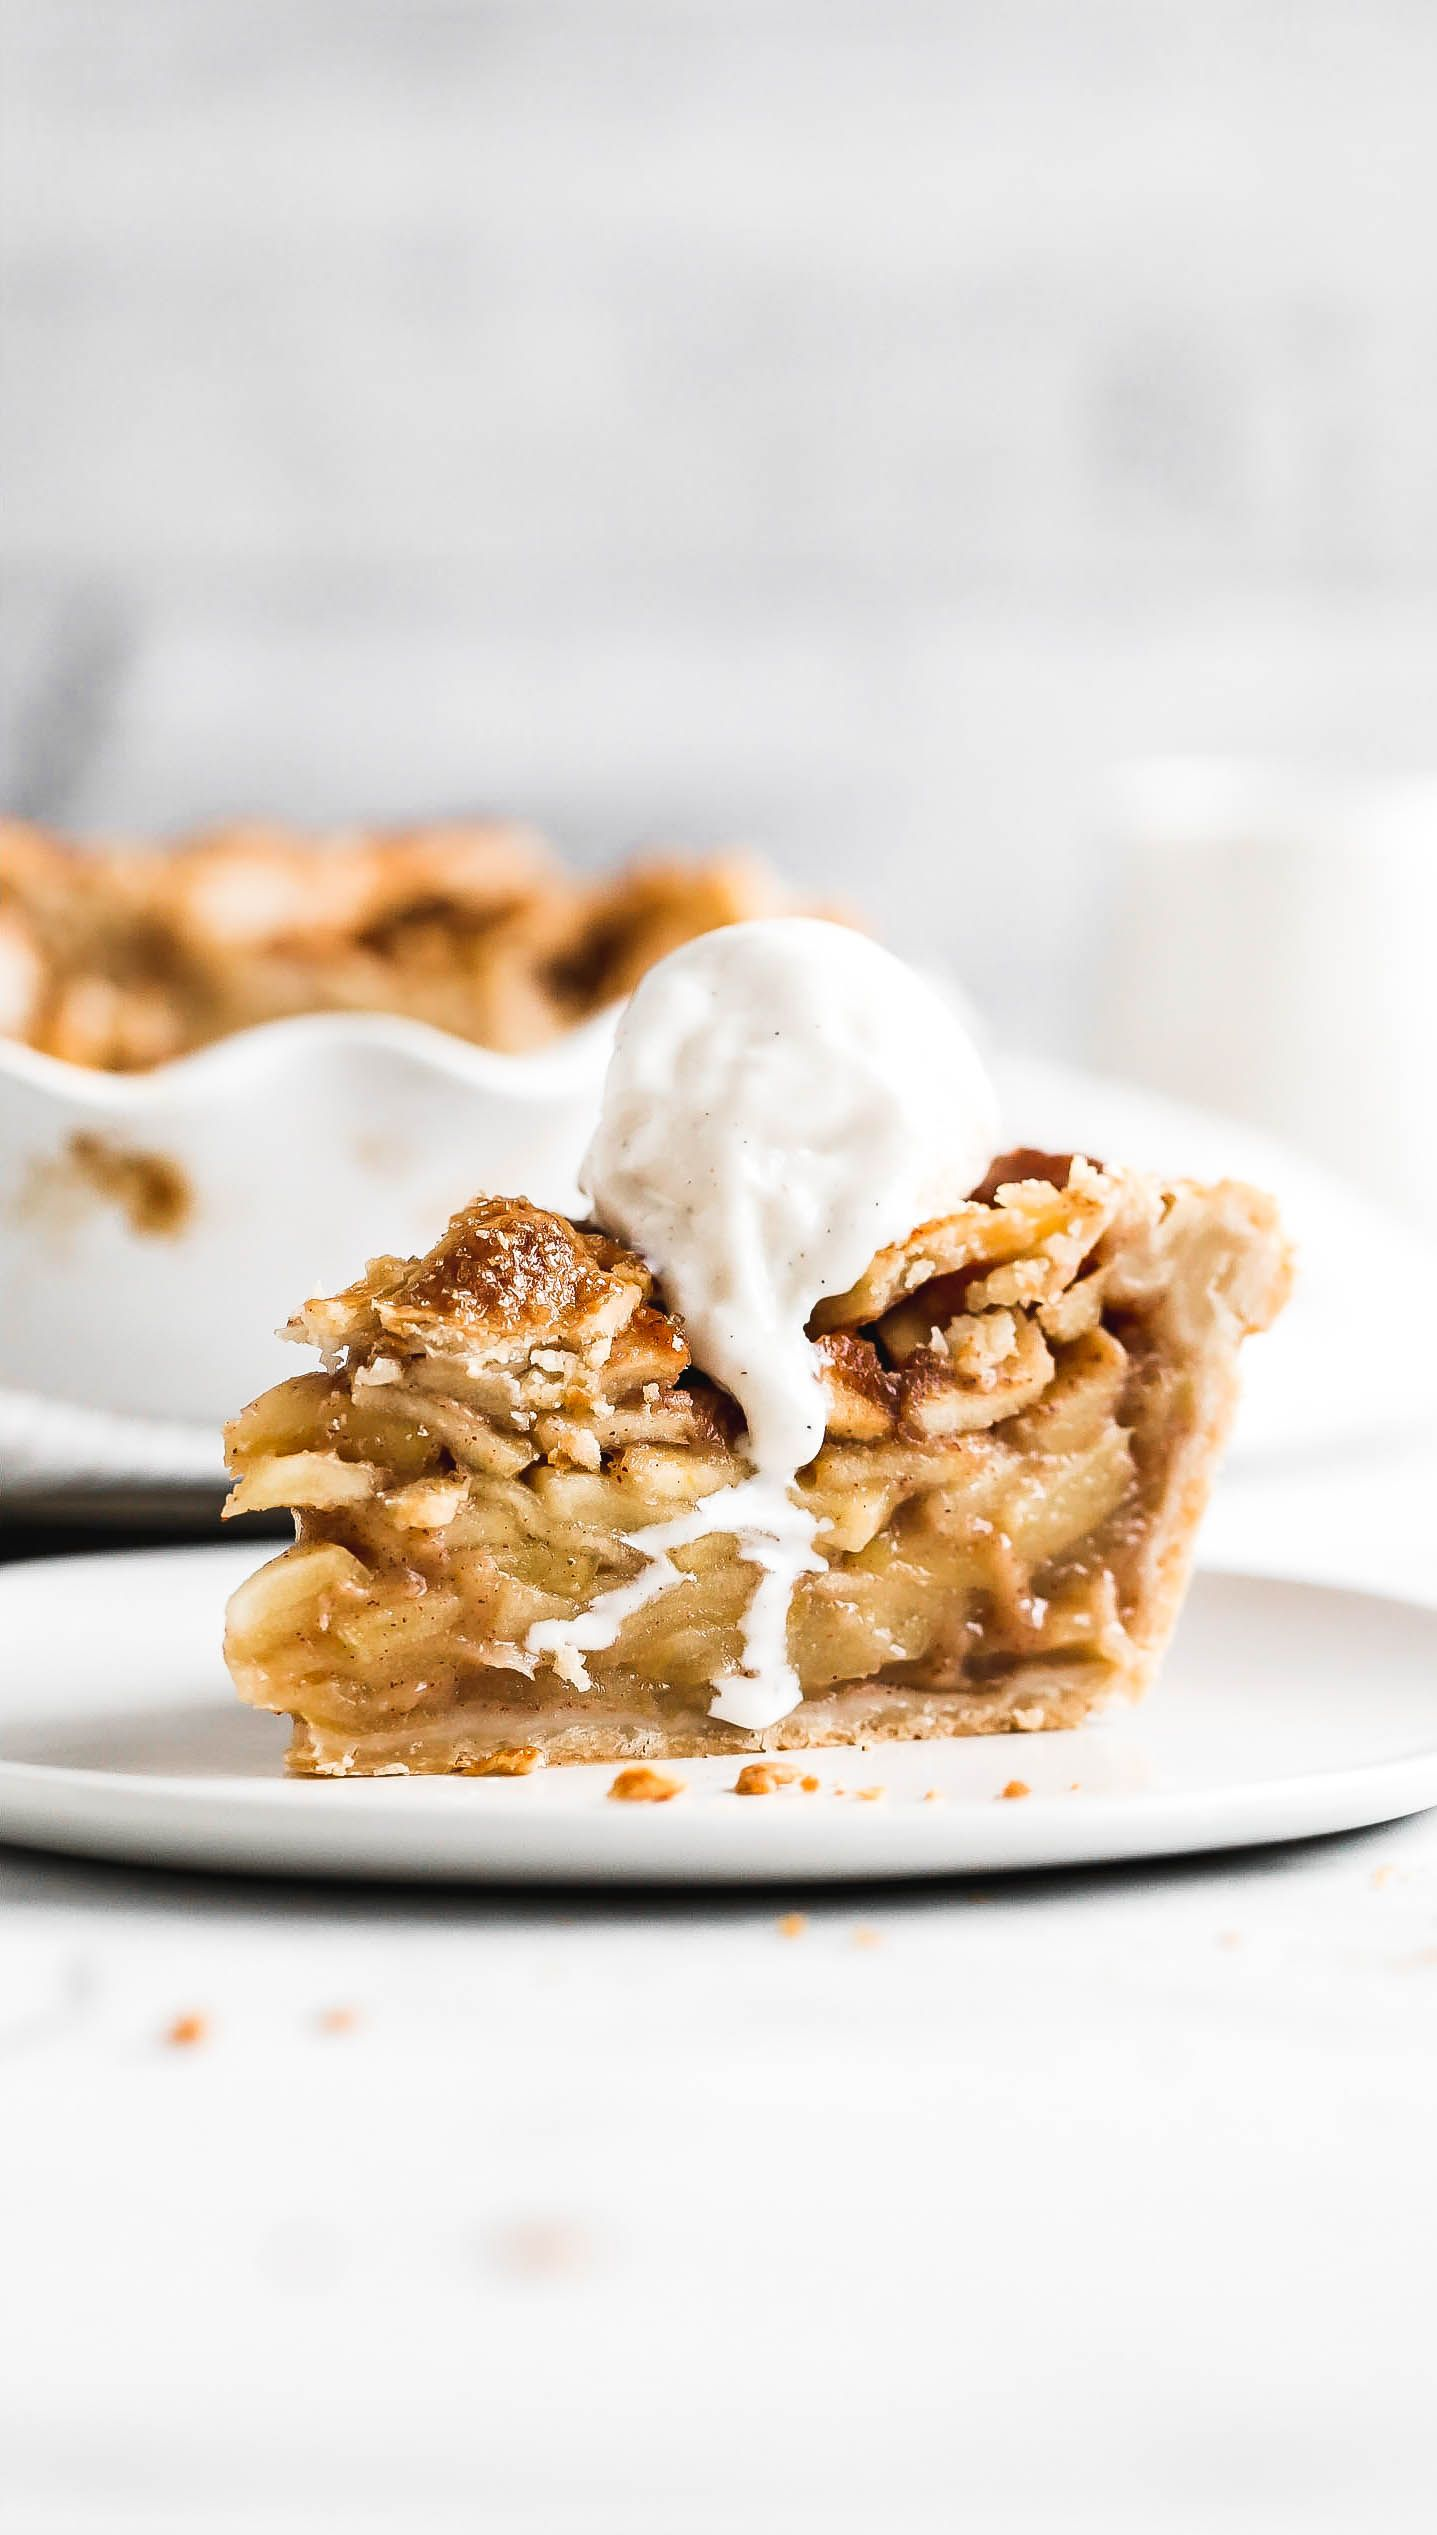 Apple Pie #applepie